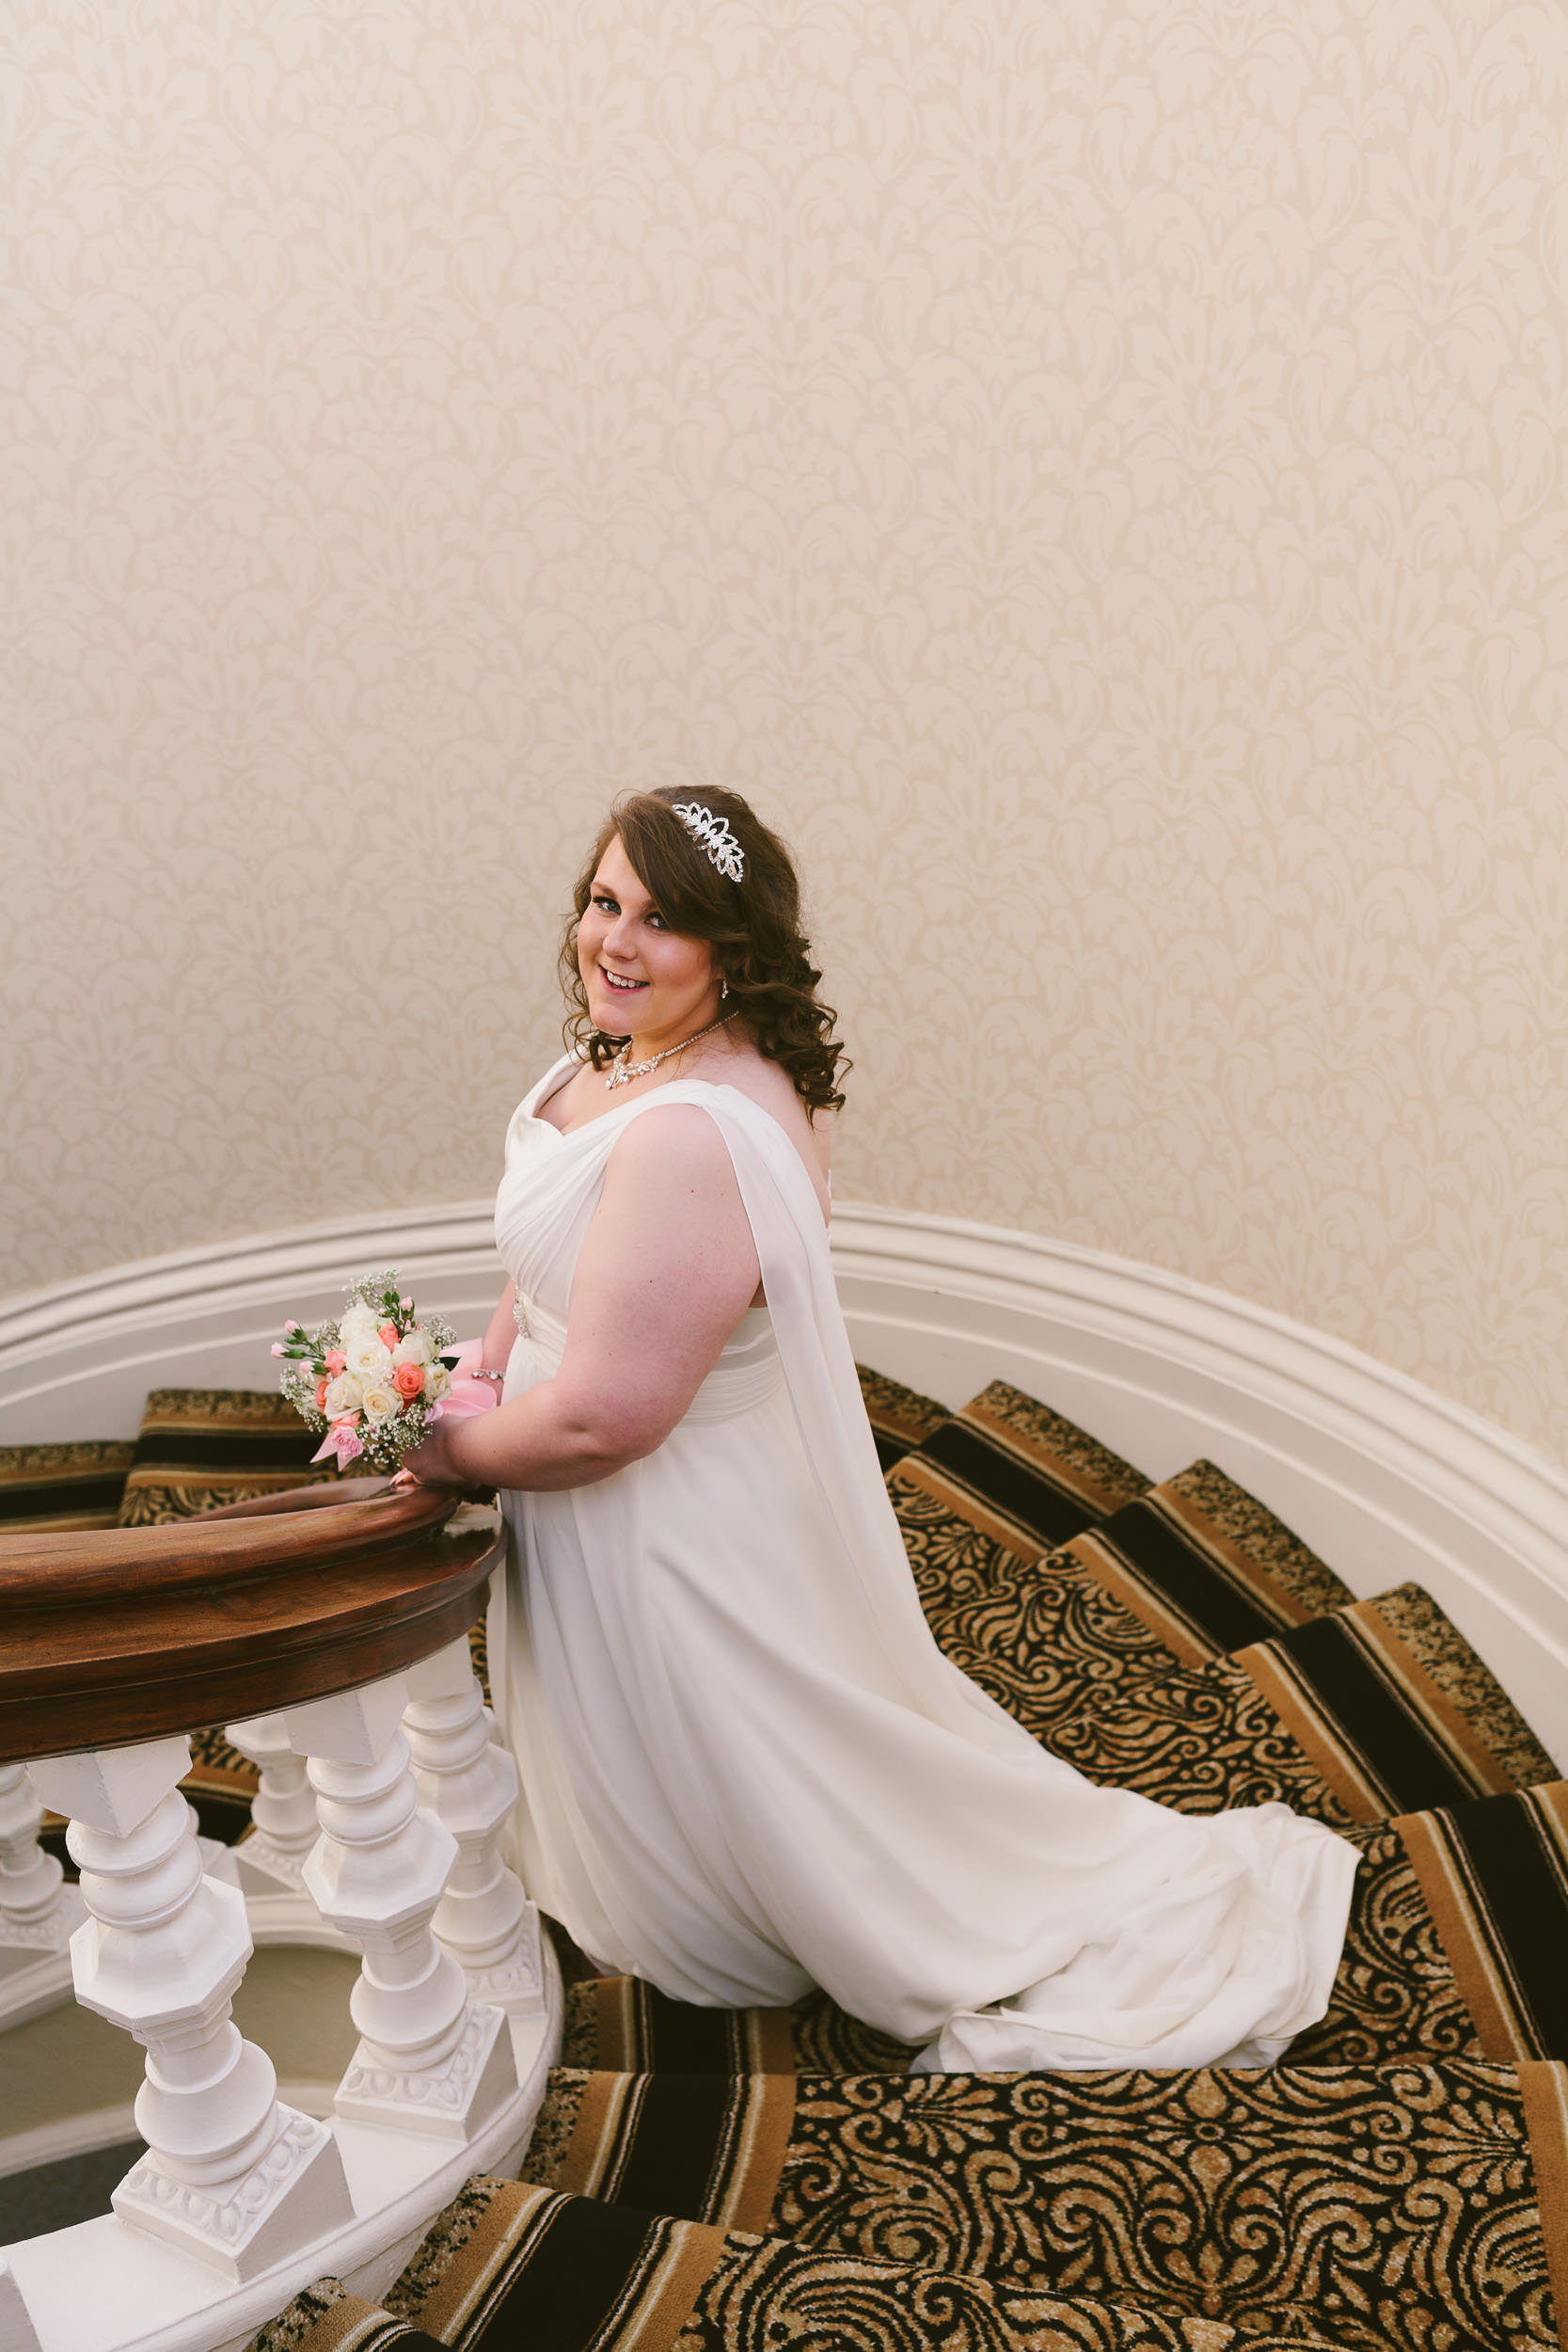 A portrait of the bride standing on the staircase steps of the Grand Hotel